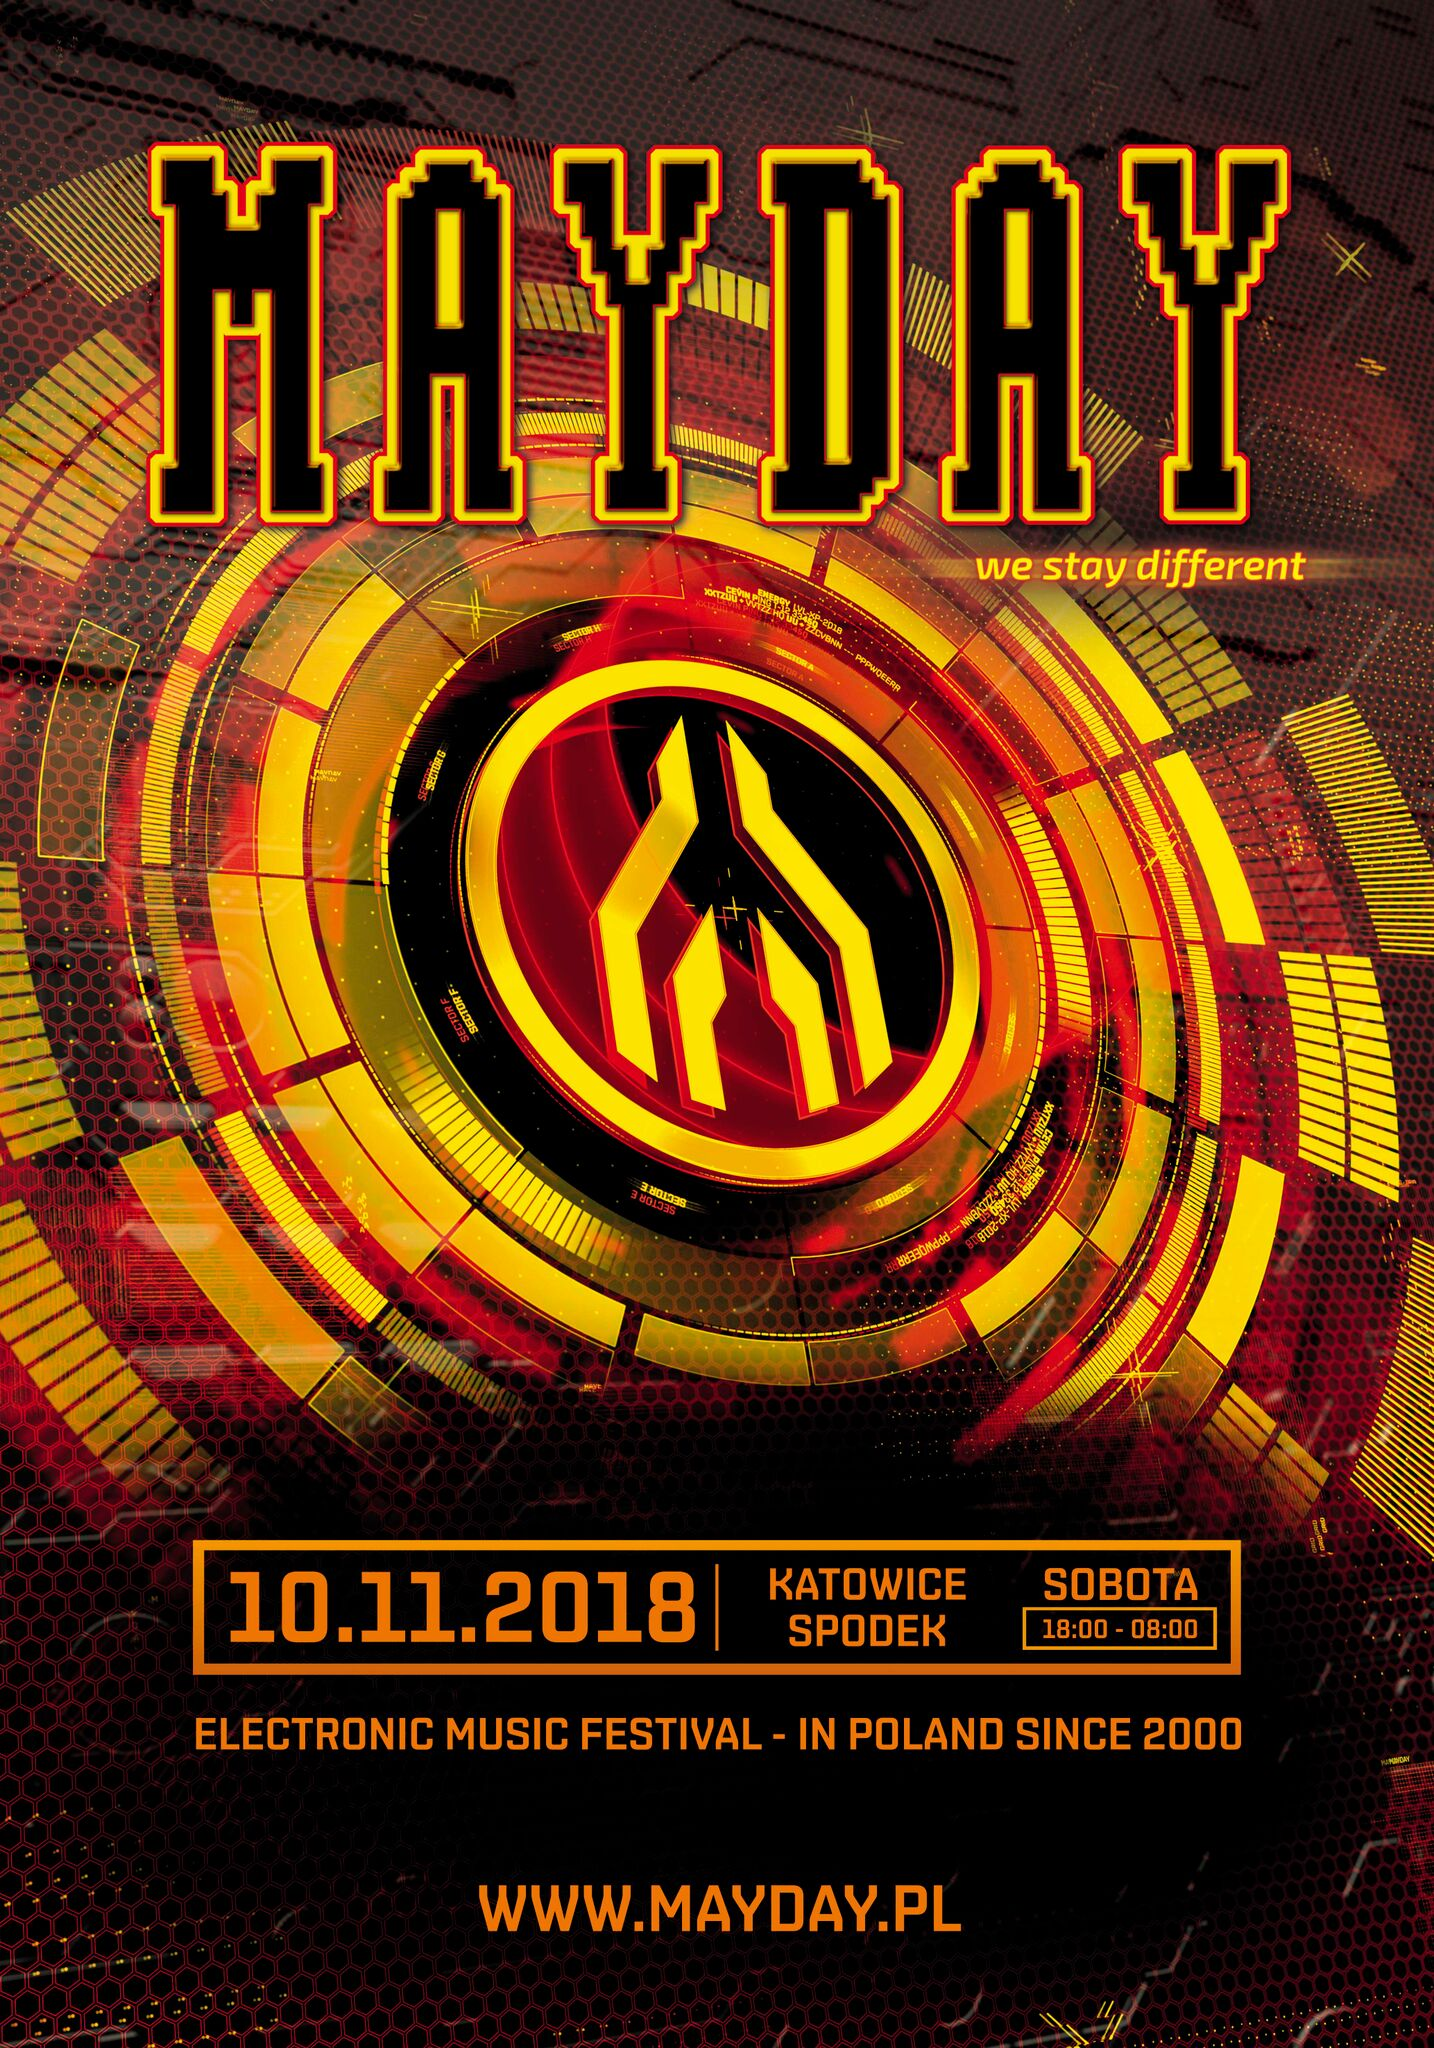 mayday poland deutsch niemcy germany bilety vip kup buy cena cost price mapa katowice spodek hala techno music house bass trailer tickets shop